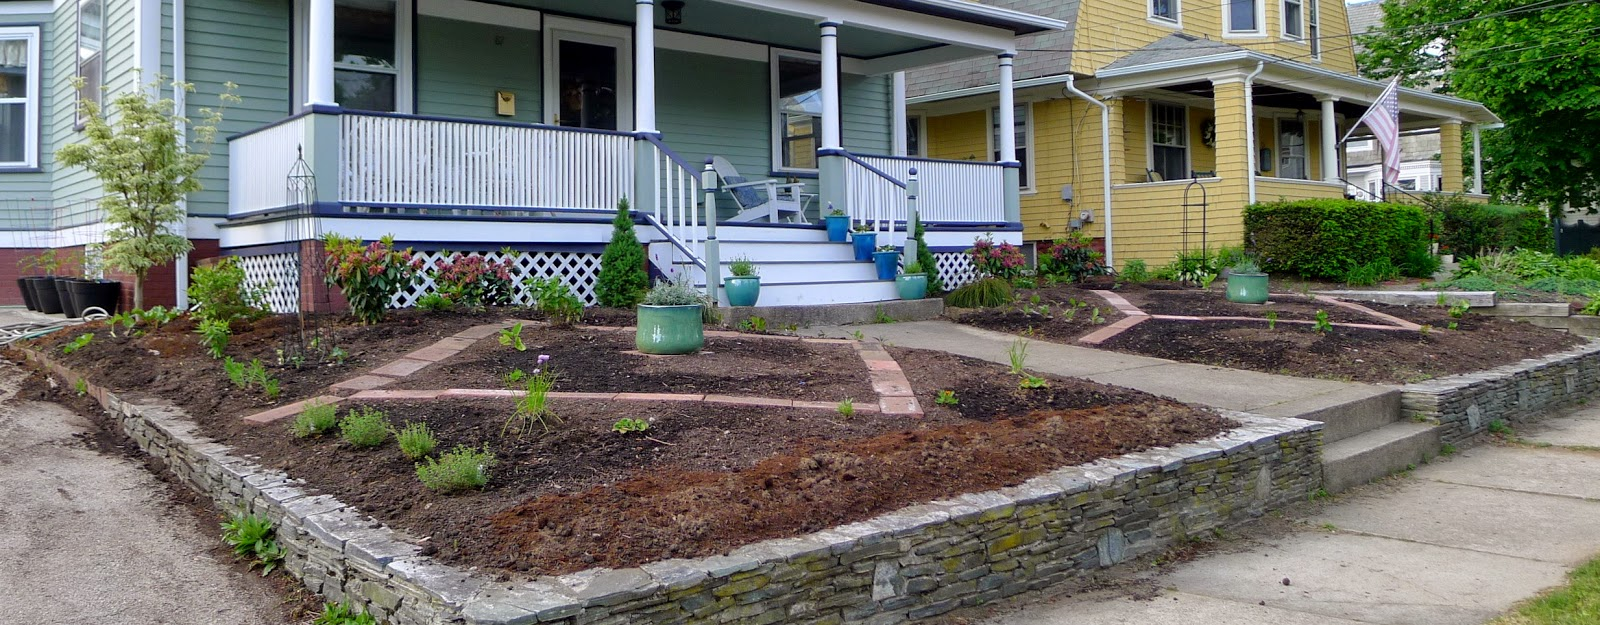 Edible Landscaping Project